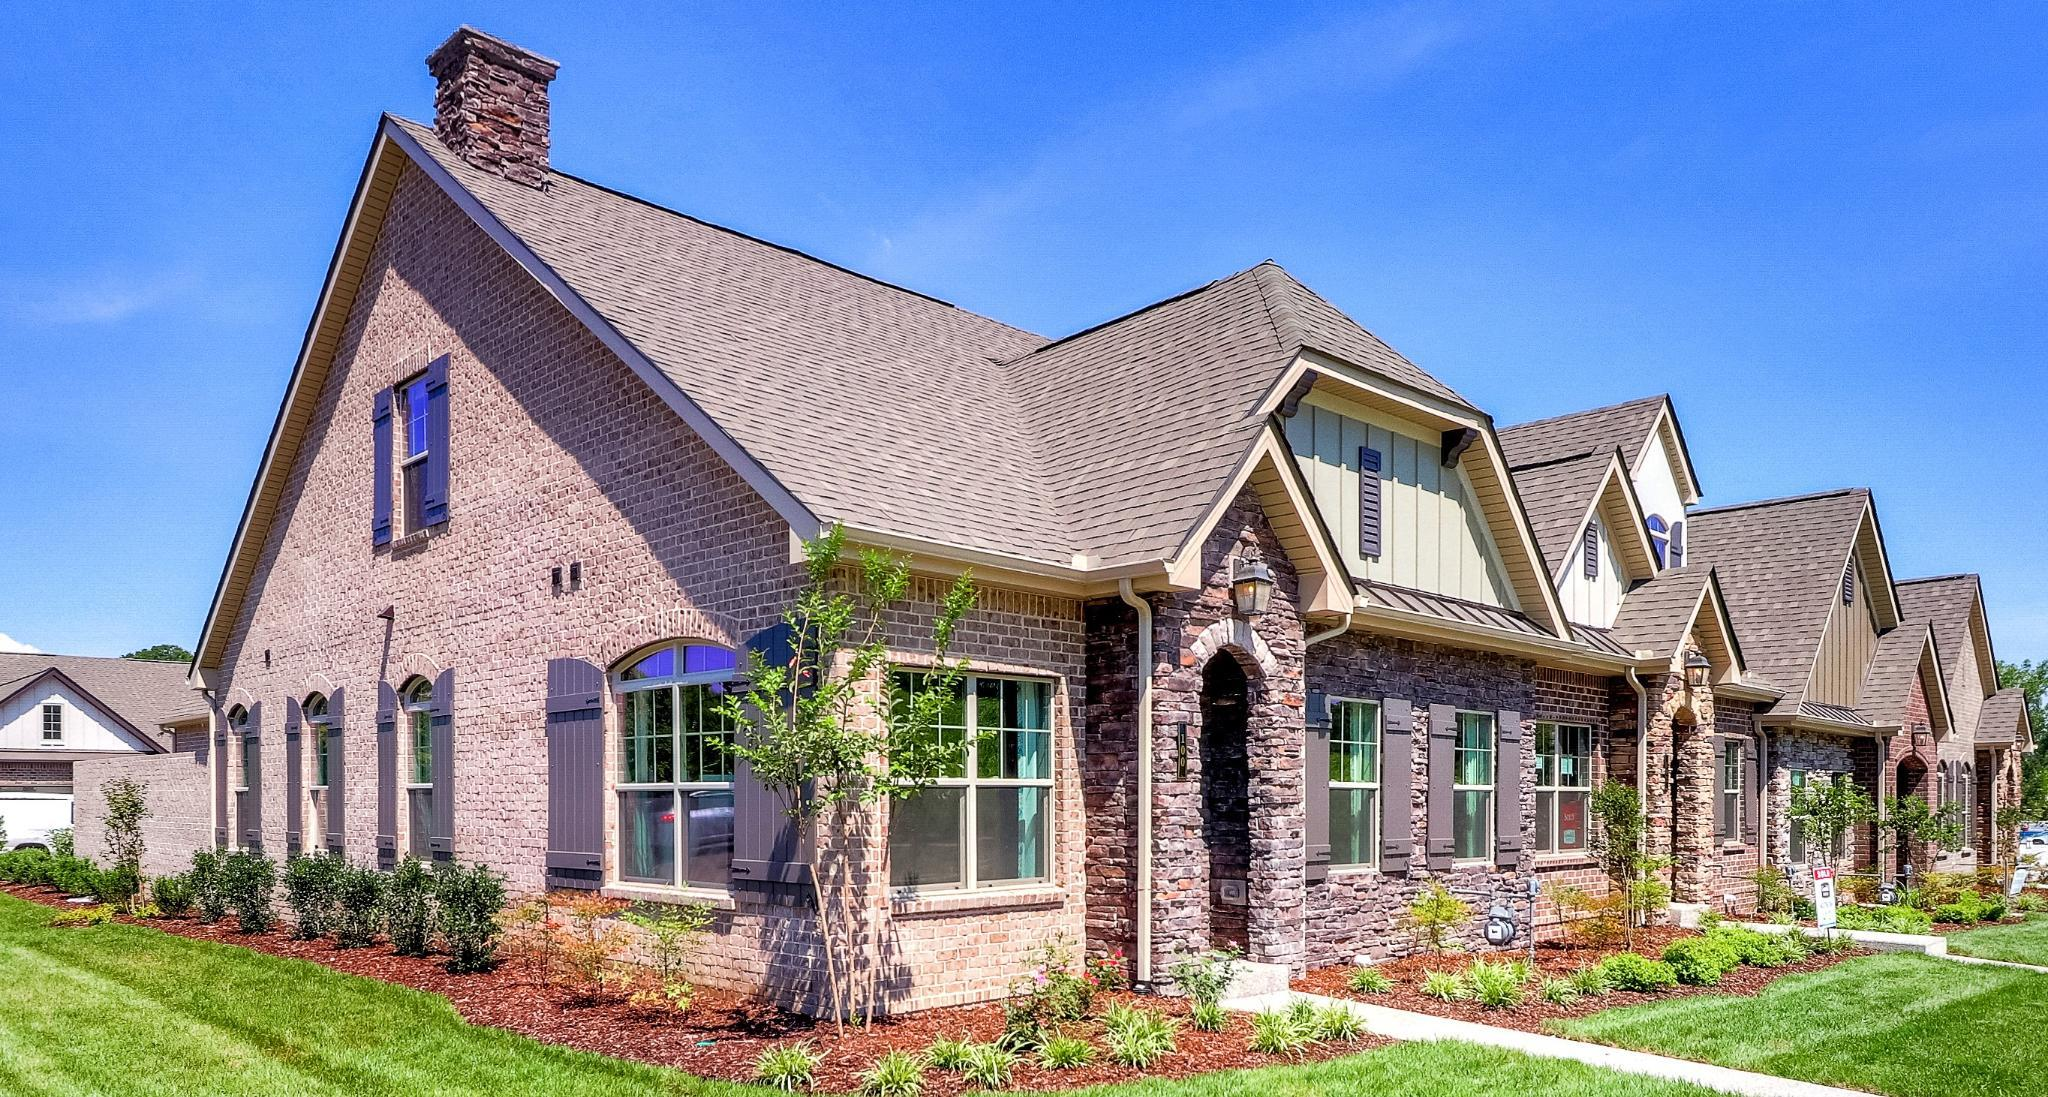 'Groves Reserve' by Goodall Homes in Nashville